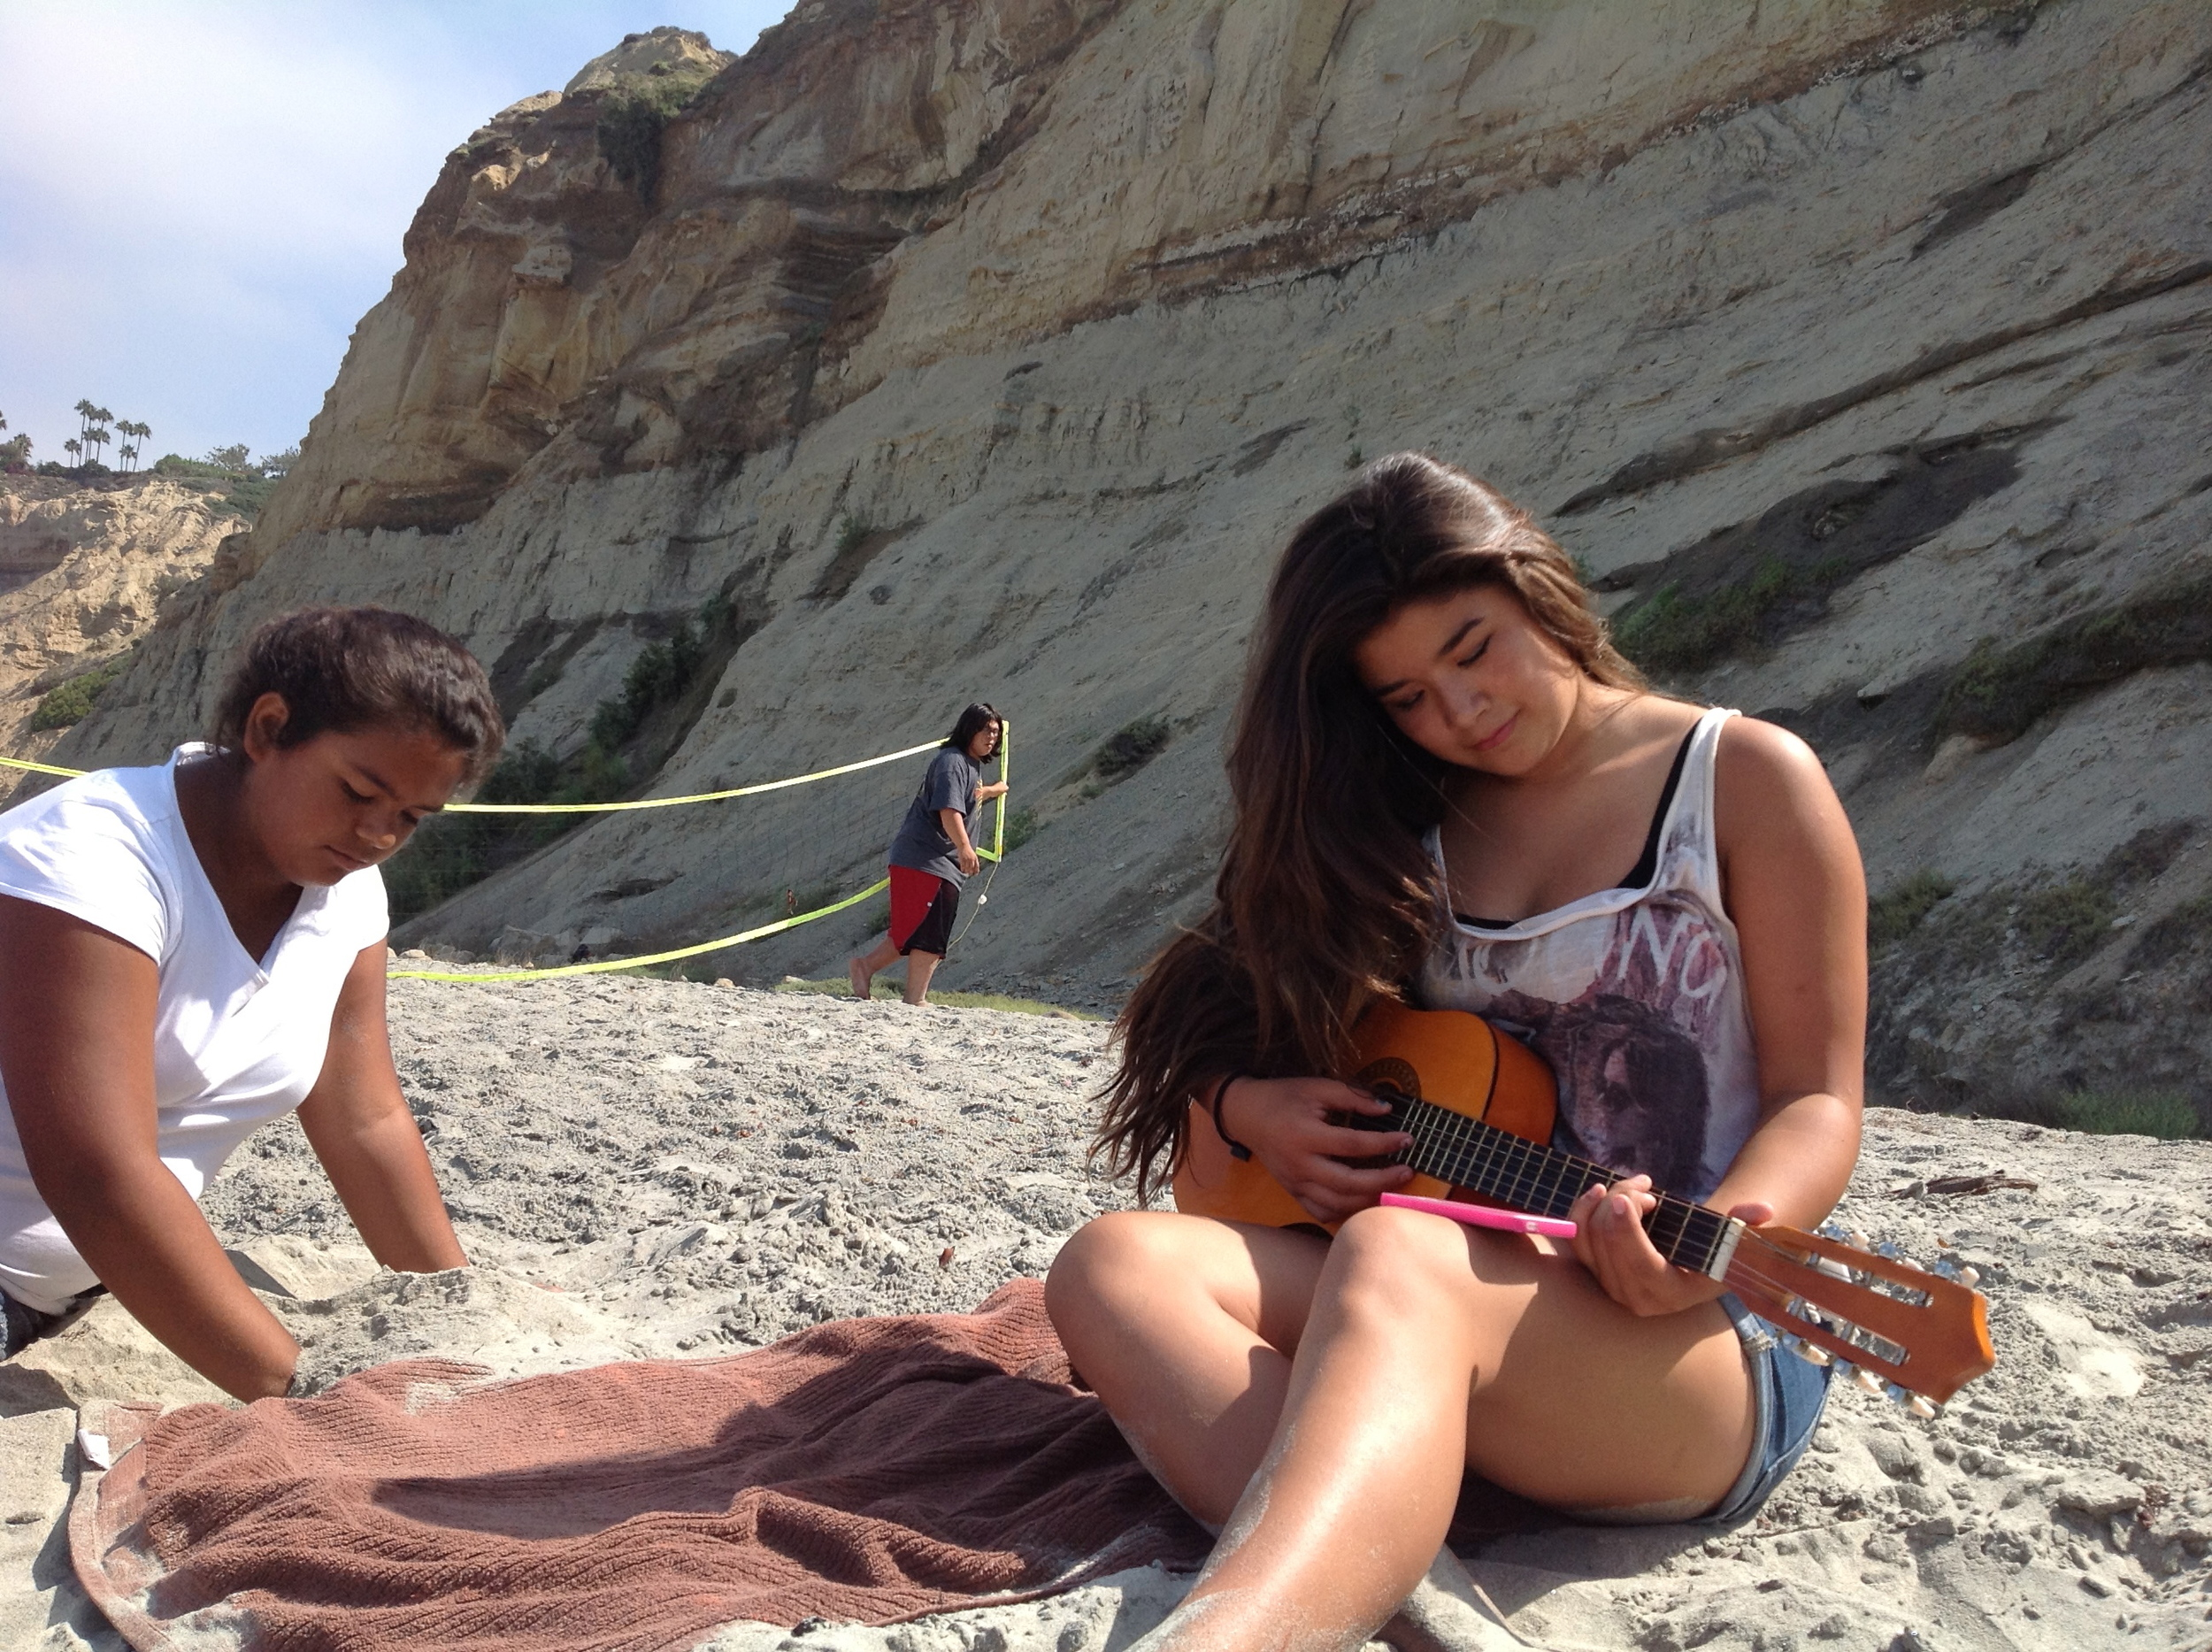 InterTribal youth Barona and Sacramento youth. Song and fitness. Location:Blacks beach, La jolla, ca aka kumeyaay territory